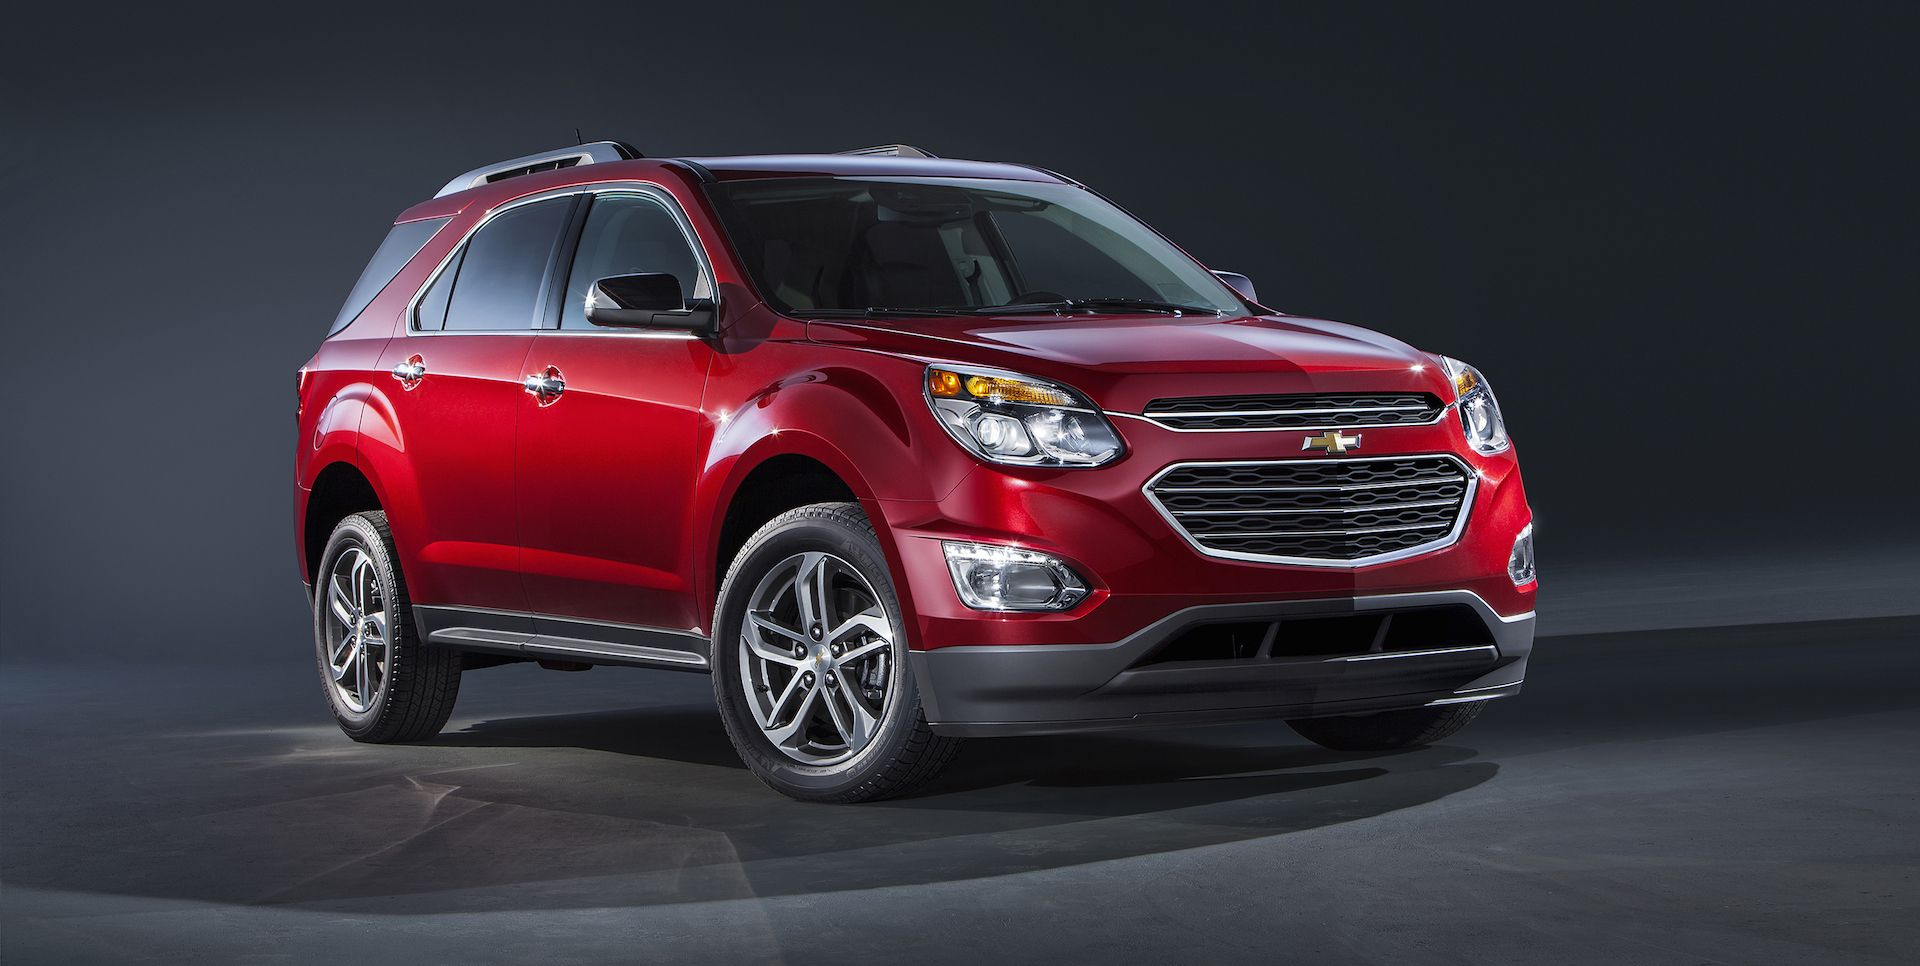 2016 chevrolet equinox updated suv unveiled at 2015 chicago auto show